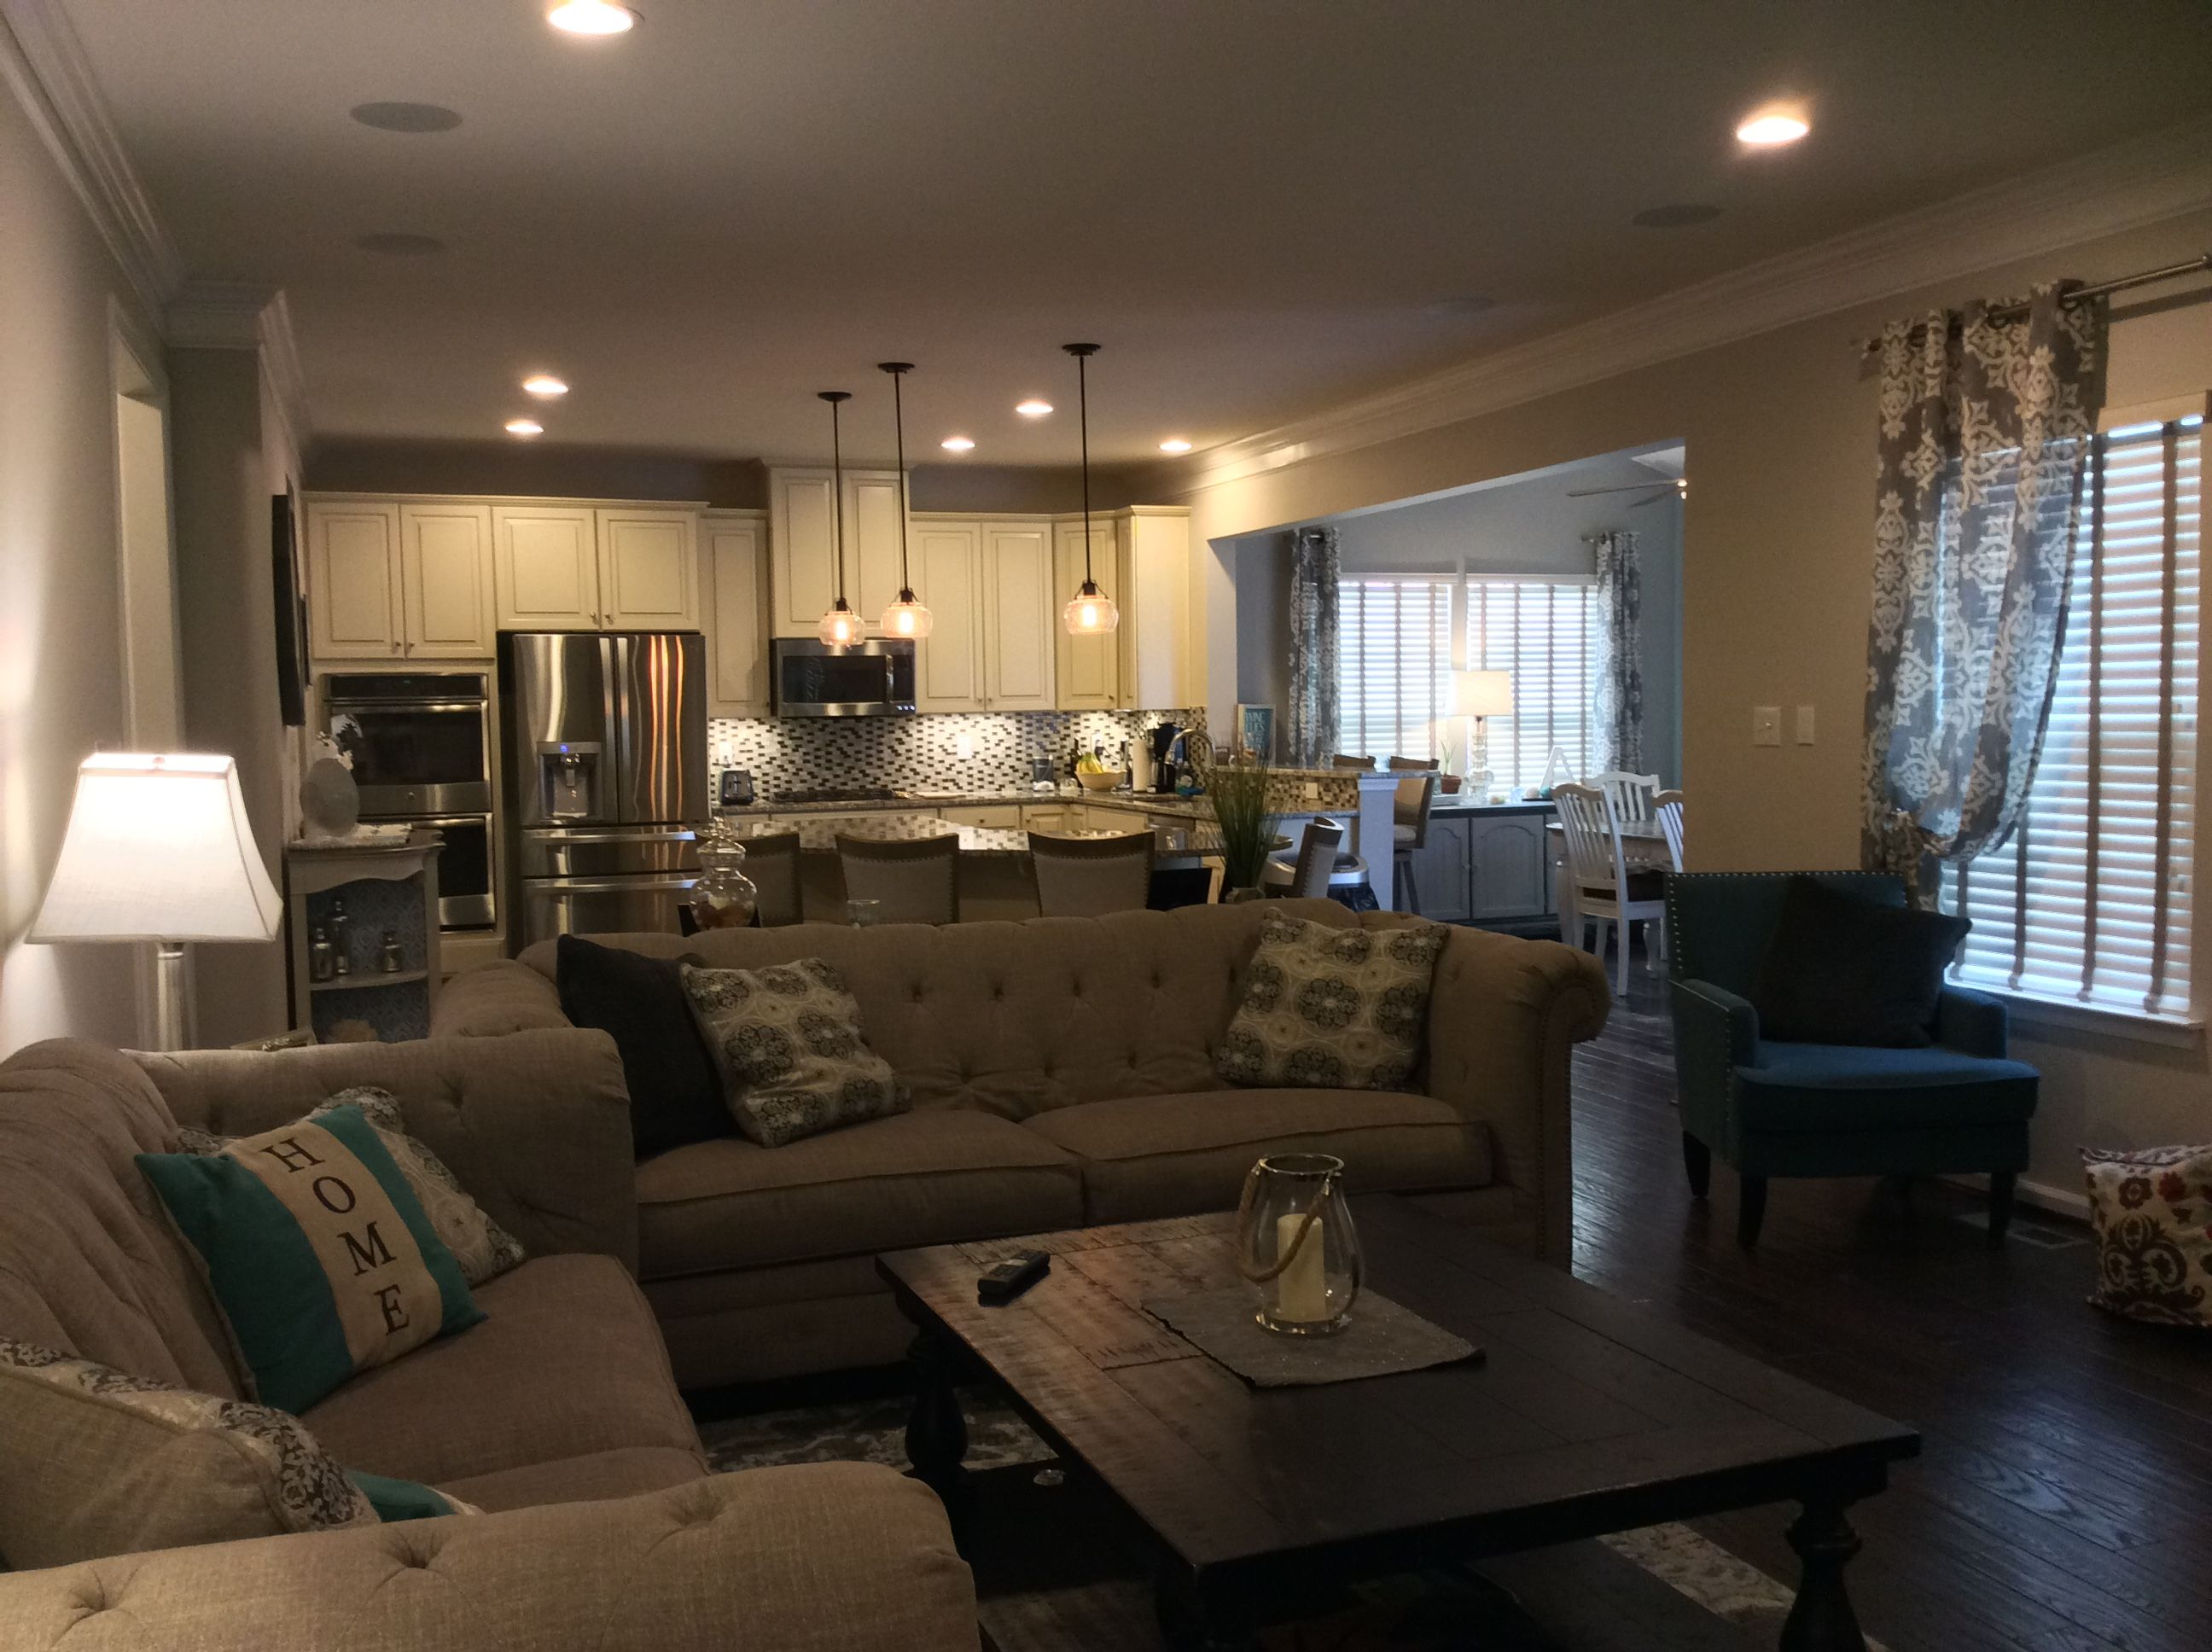 Ryan homes Rome model family room kitchen and morning